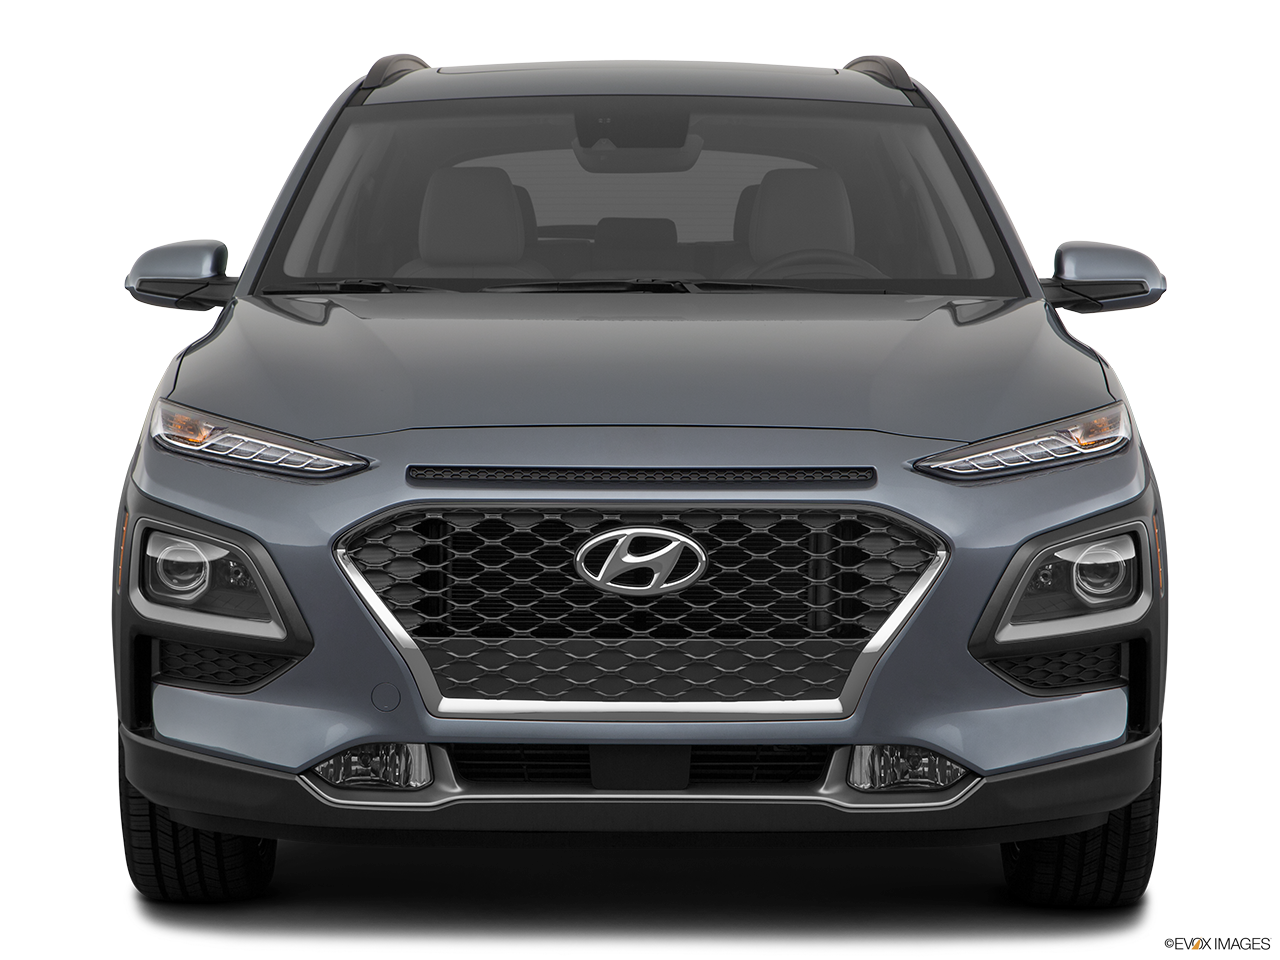 Front view of the Hyundai Kona Electric